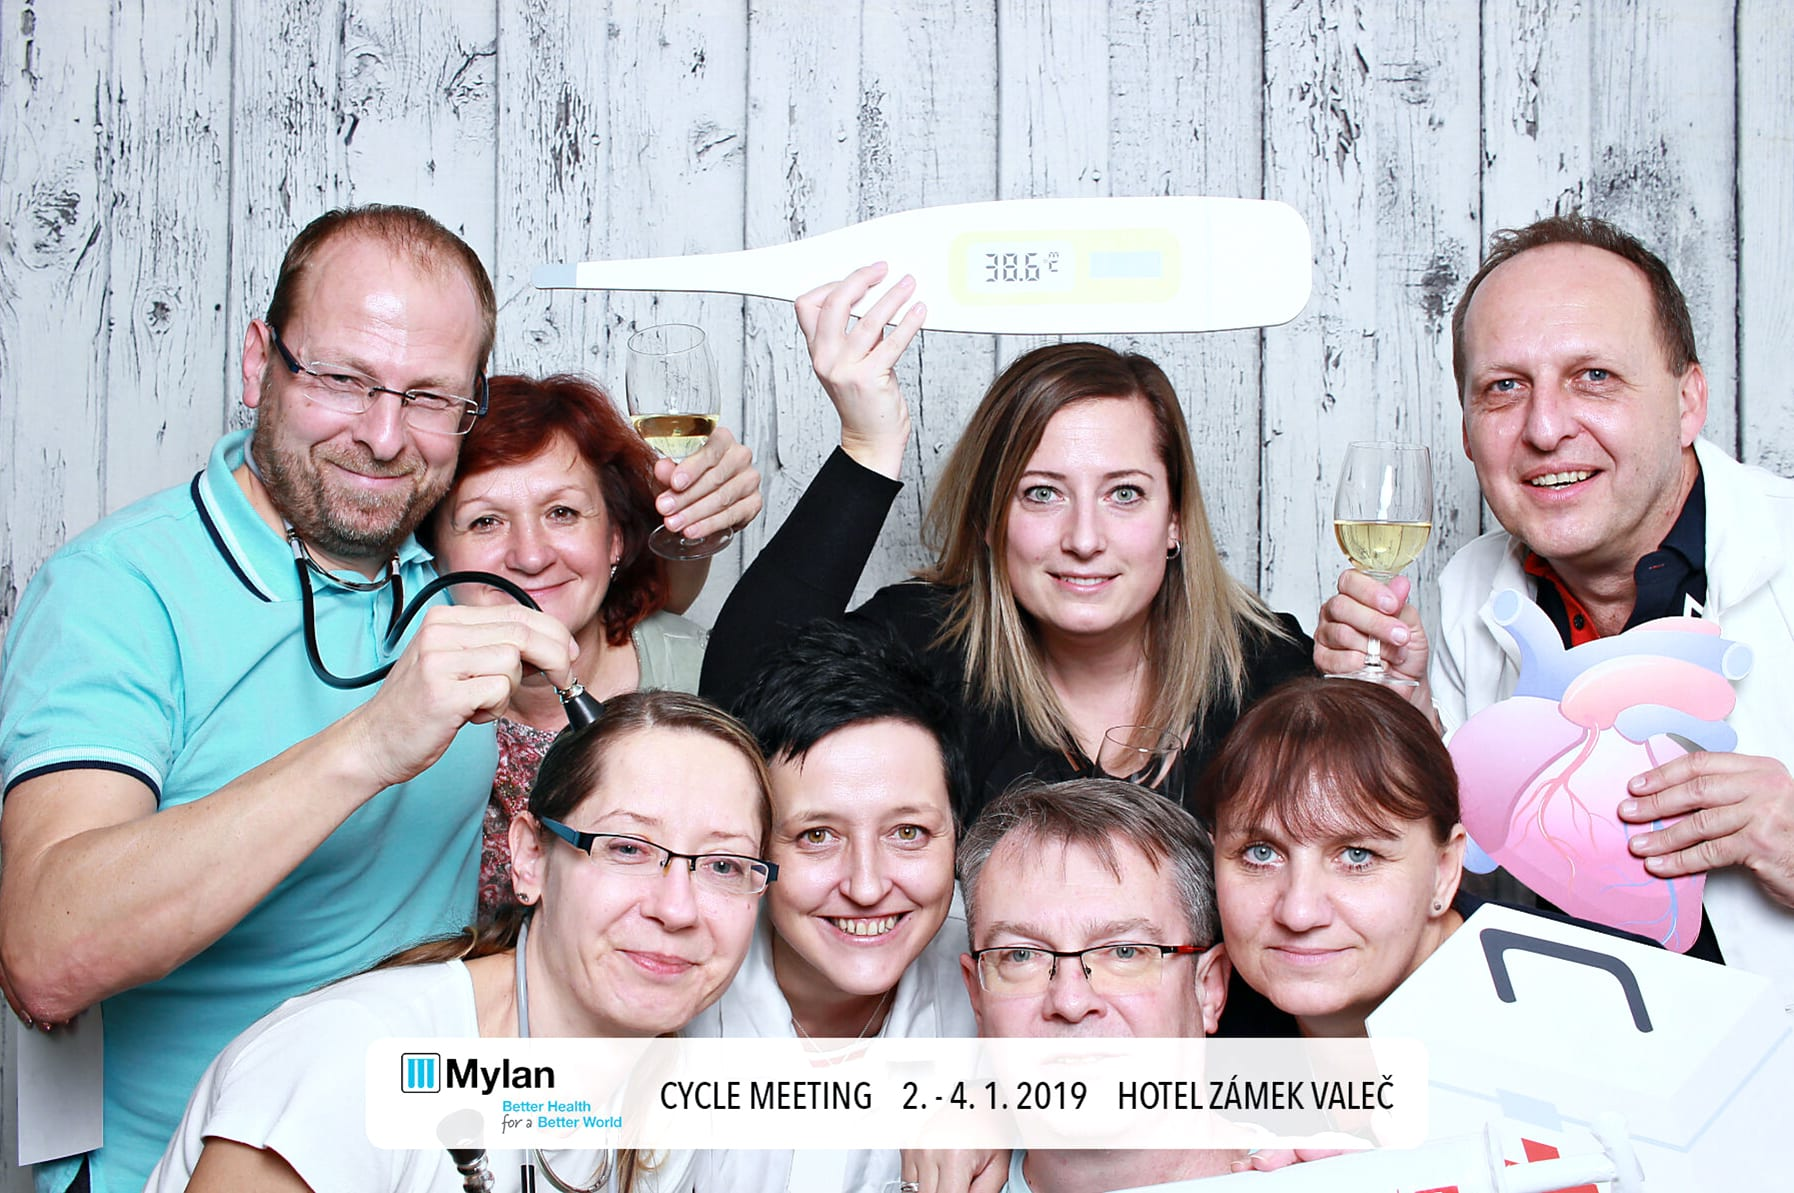 fotokoutek-mylan-cycle-meeting-2-1-2019-563373